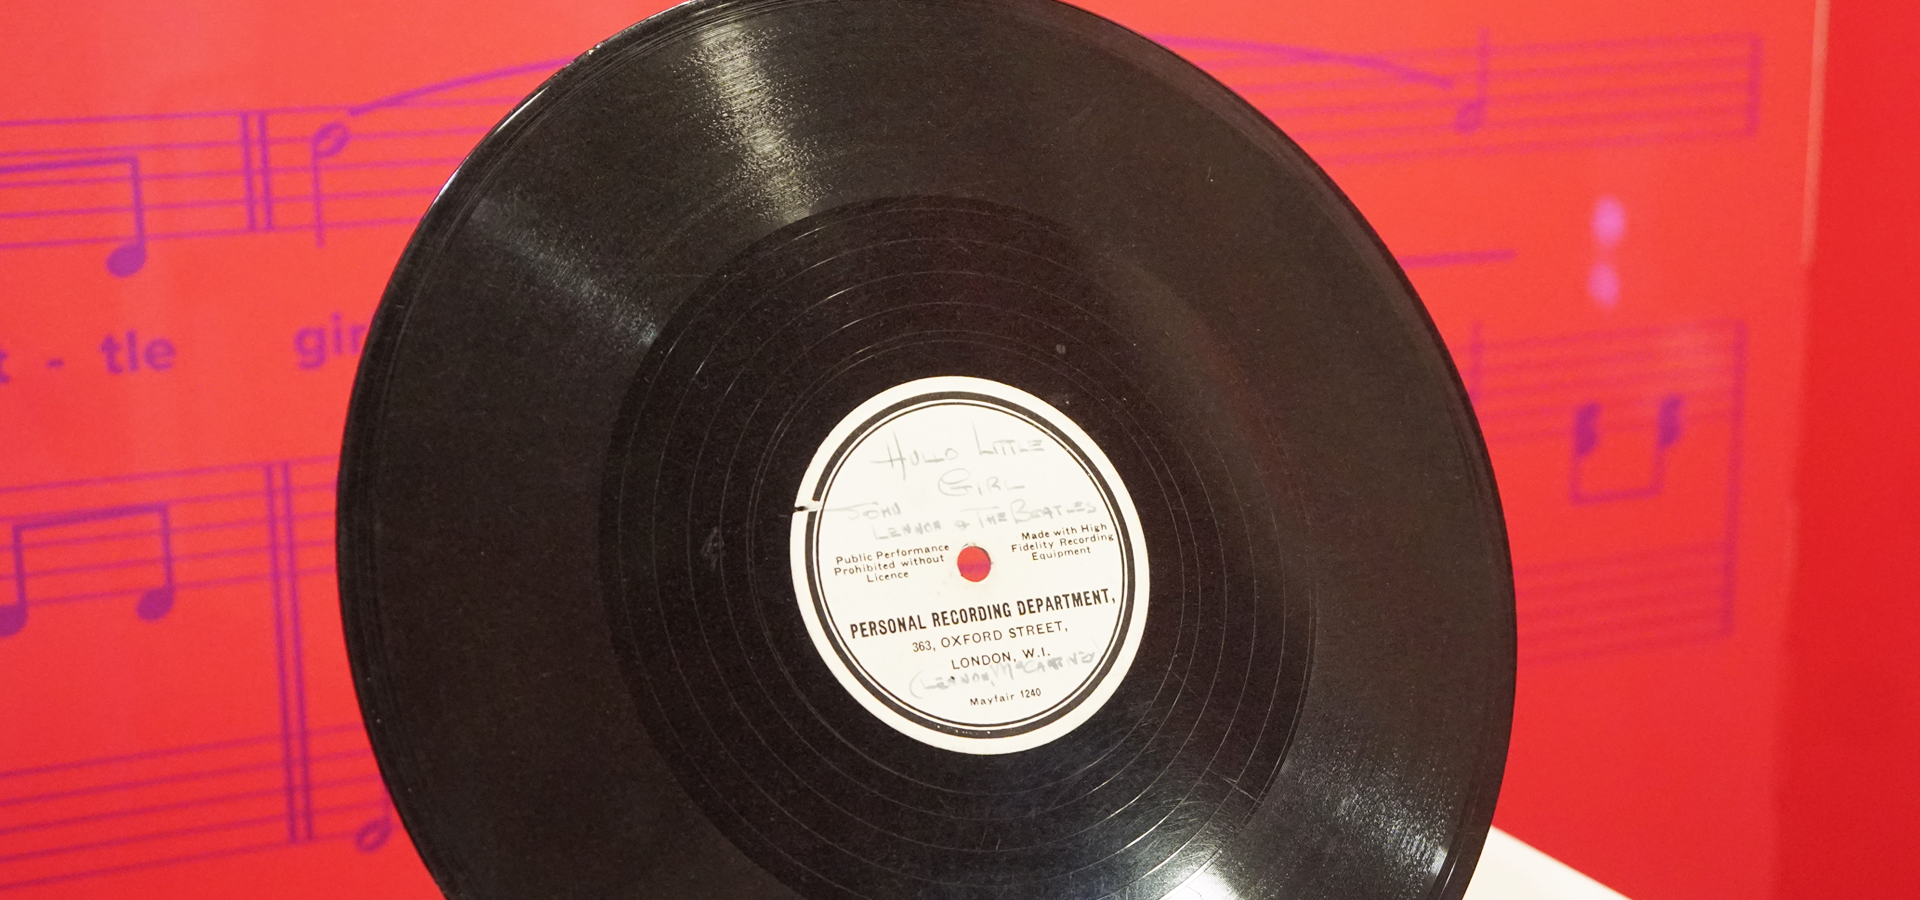 Memorabilia: the record that launched The Beatles